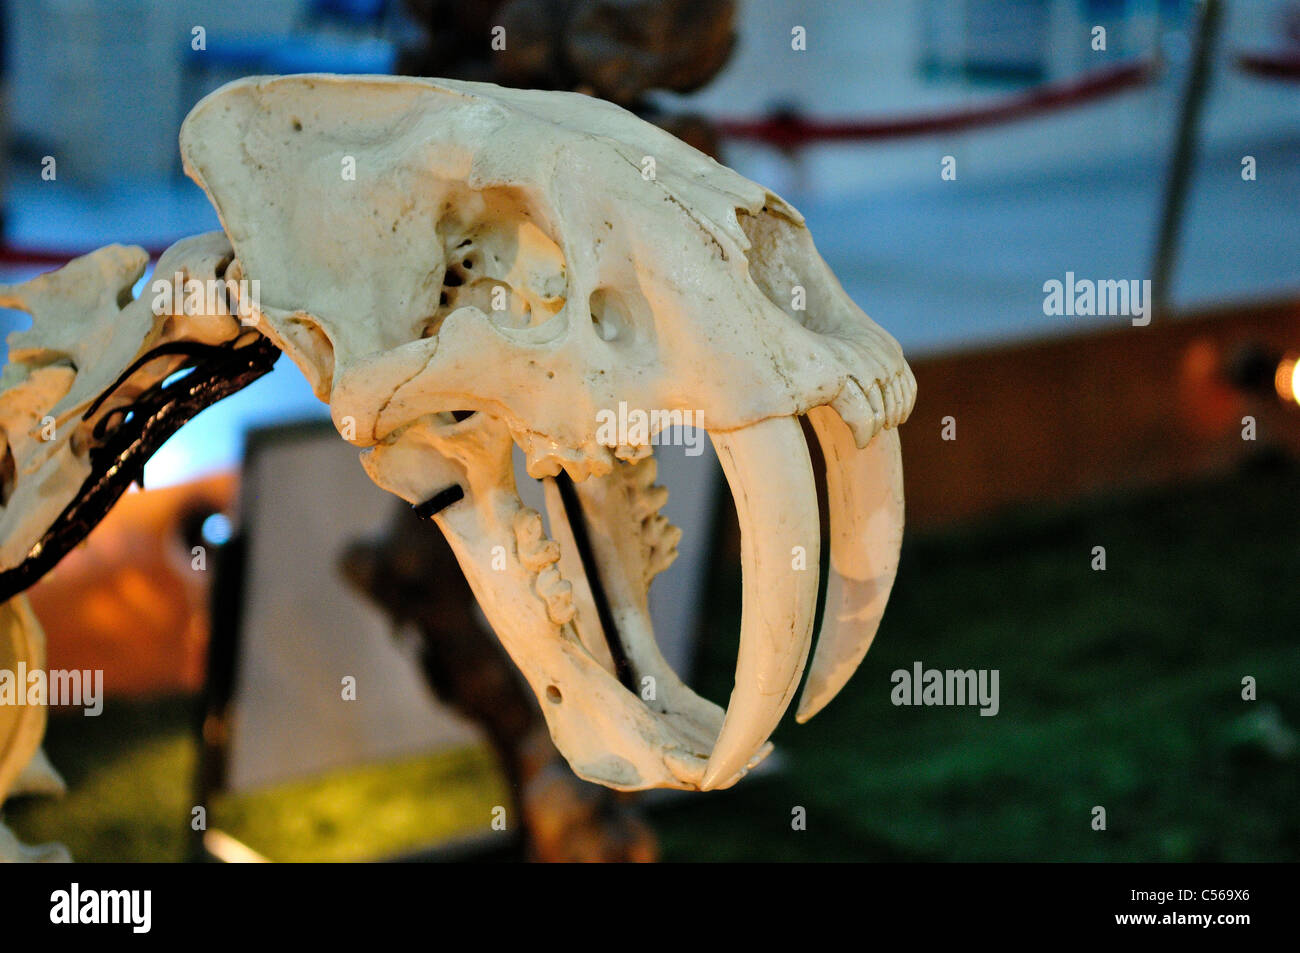 hight resolution of skull of a saber toothed tiger beijing china stock image